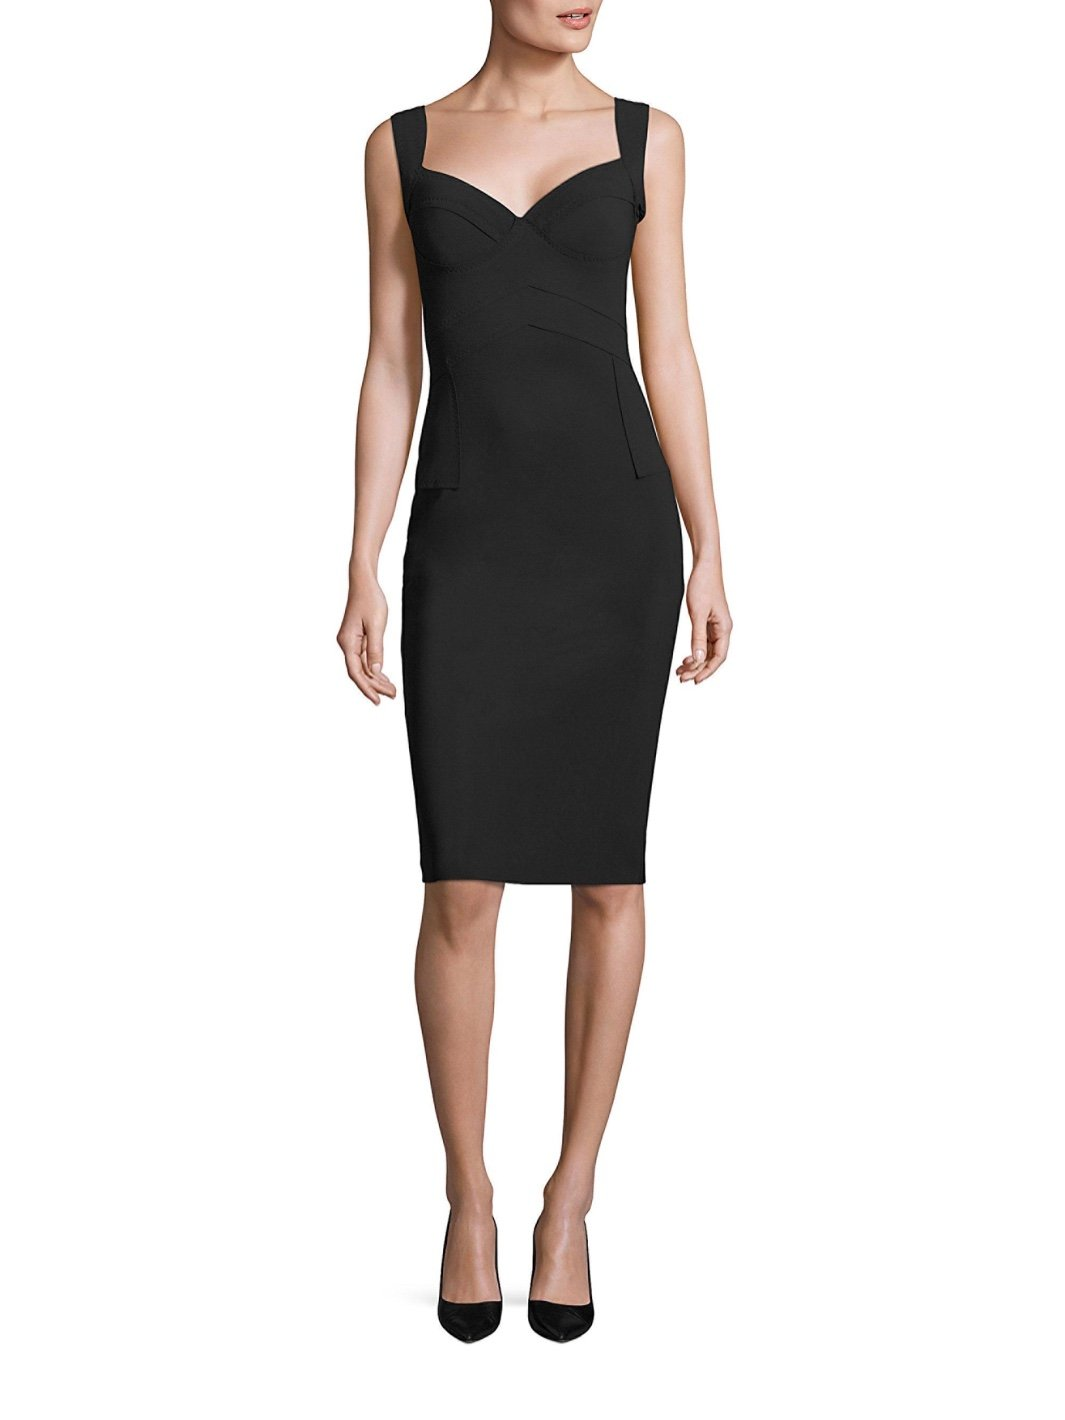 Taranne Tank Bodycon Dress - The Bobby Boga